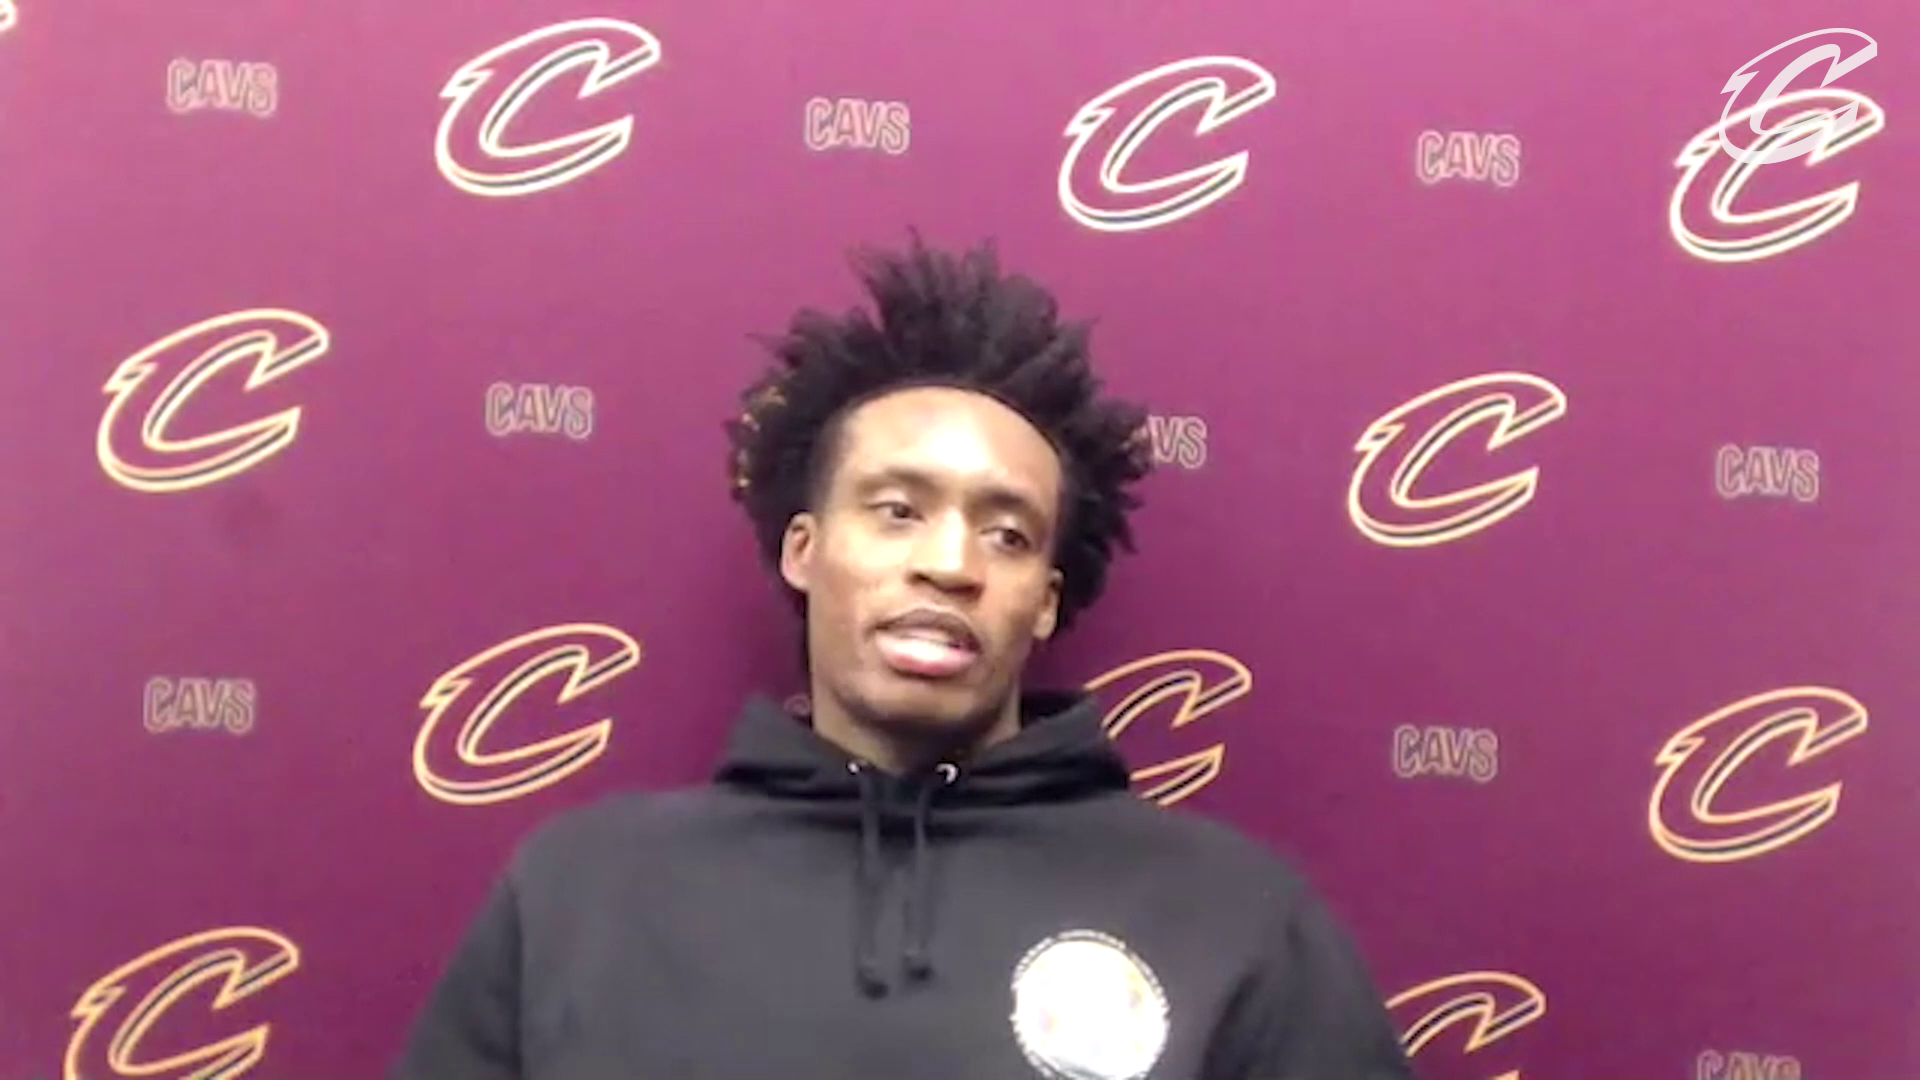 Cavs at Mavericks Postgame: Collin Sexton